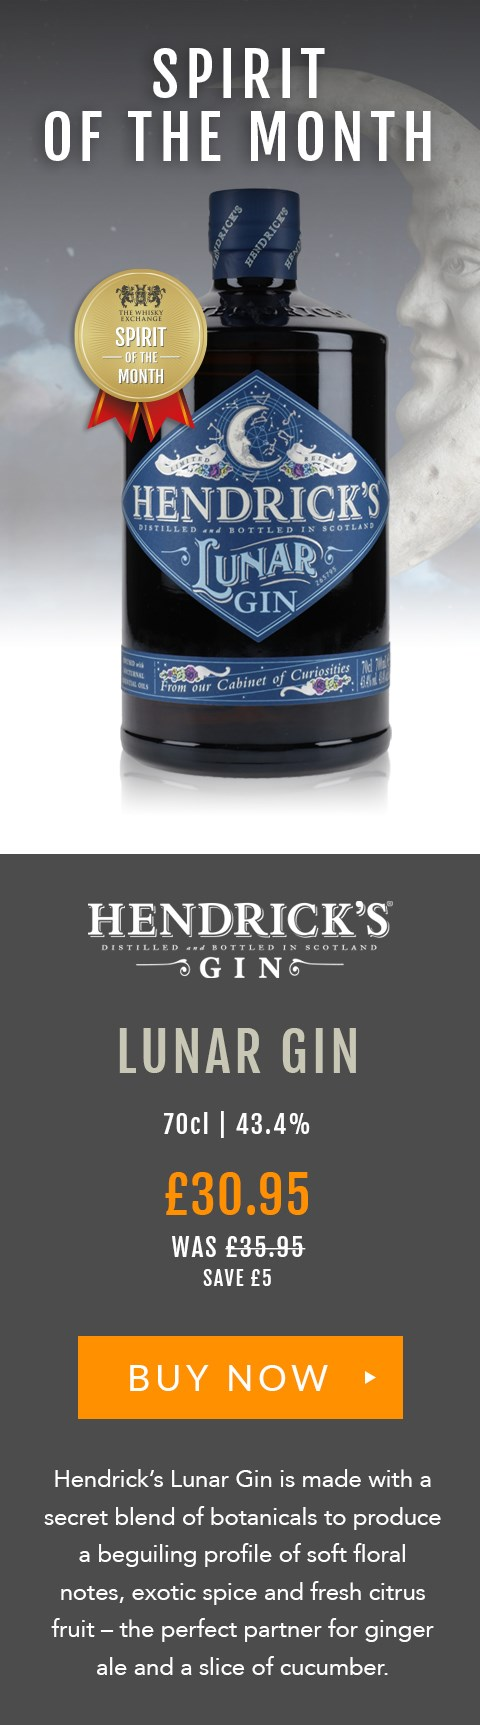 SPIRIT OF THE MONTH  Hendrick's Lunar Gin  70cl | 43.4%  £30.95 (was £35.95)  Save £5  BUY NOW> https://www.thewhiskyexchange.com/feature/spiritofthemonth  Hendrick's Lunar Gin is made with a secret blend of botanicals to produce a beguiling profile of soft floral notes, exotic spice and fresh citrus fruit – the perfect partner for ginger ale and a slice of cucumber.